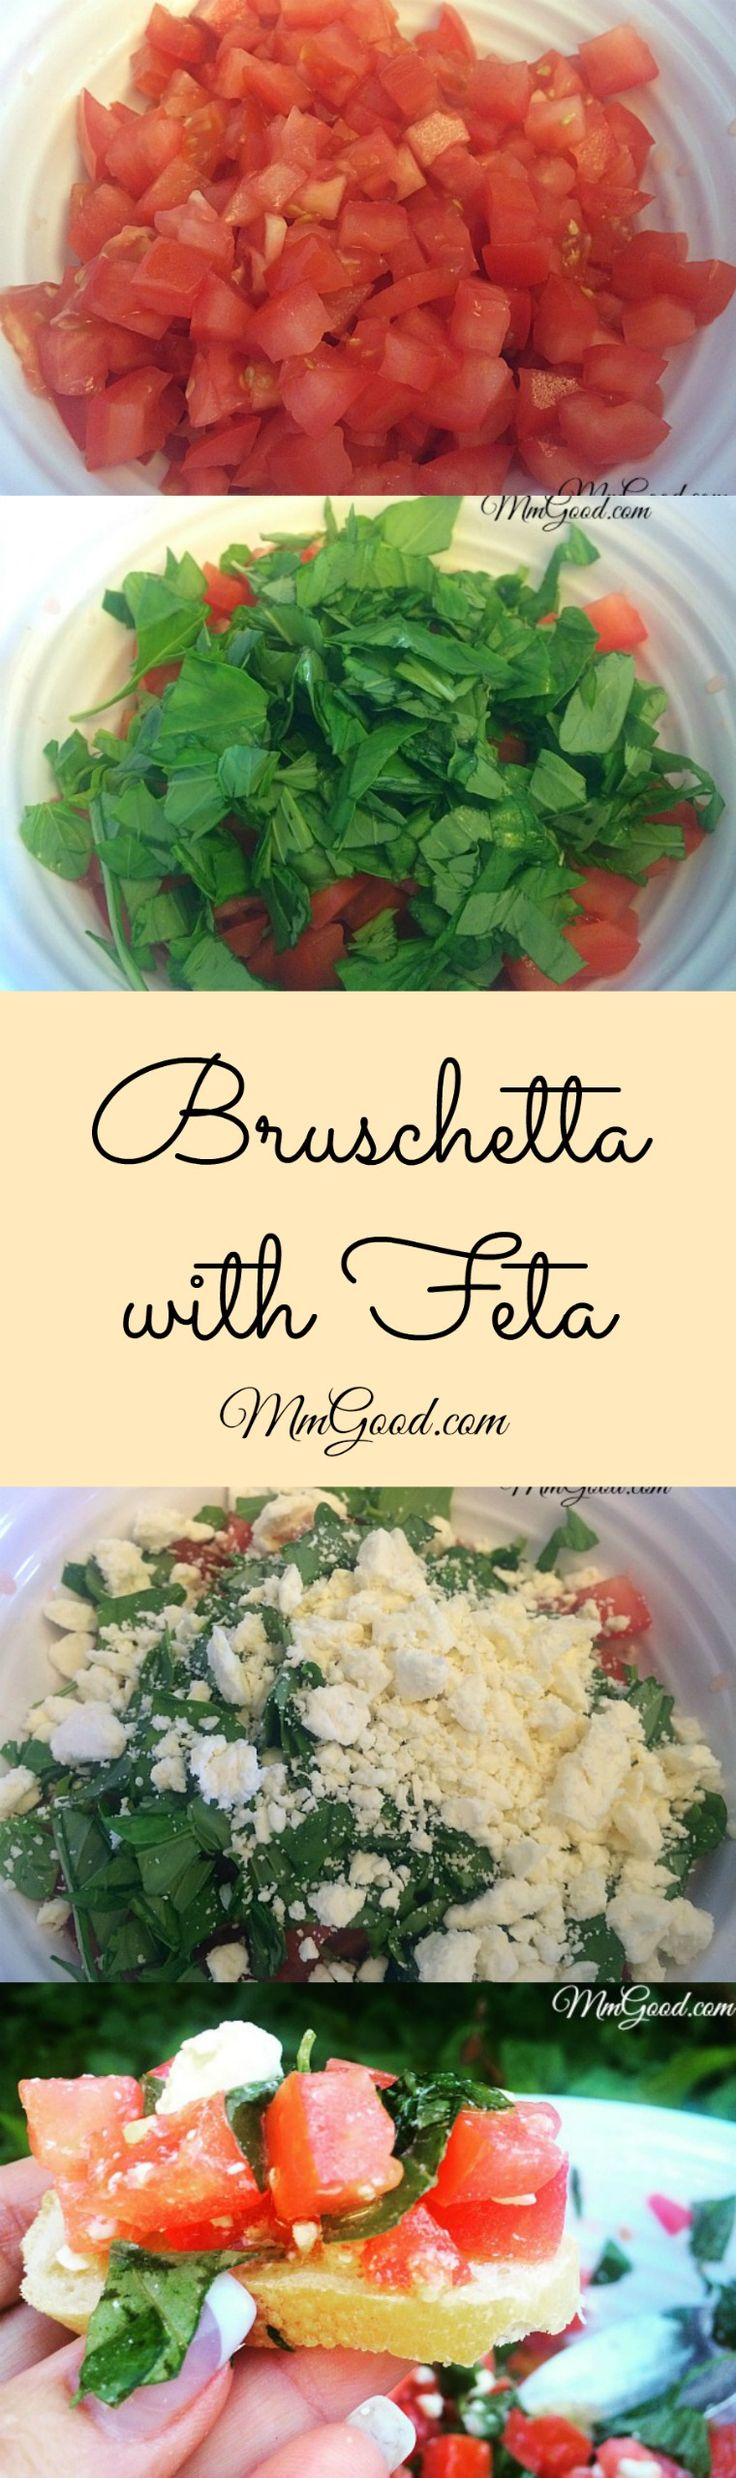 My recipe is a great twist to the traditional bruschetta by adding the feta cheese it not only adds texture but flavor. This is the perfect appetizer, side dish for summer bbq's, picnics or any gathering. | www.MmGood.com